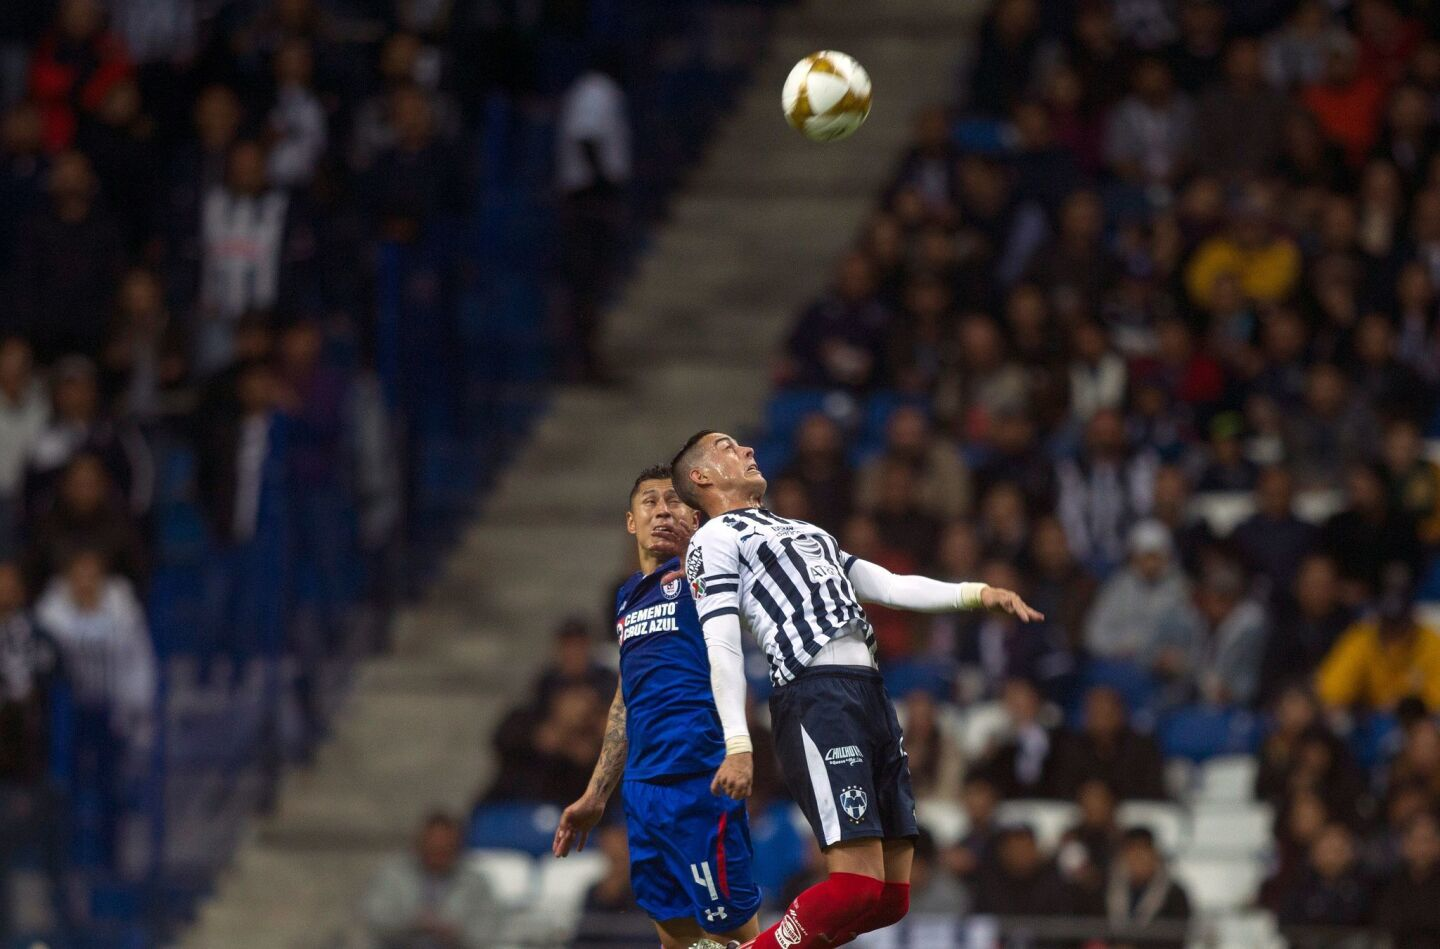 Monterrey's Argentinian foward Rogelio Funes Mori (R) jumps for a header with Cruz Azul's Mexican defender Julio Dominguez (L) during the first leg of the semifinal of the Mexican Apertura 2018 tournament football, match at the BBVA Bancomer stadium in Monterrey, Mexico on December 5, 2018. (Photo by Julio Cesar AGUILAR / AFP)JULIO CESAR AGUILAR/AFP/Getty Images ** OUTS - ELSENT, FPG, CM - OUTS * NM, PH, VA if sourced by CT, LA or MoD **